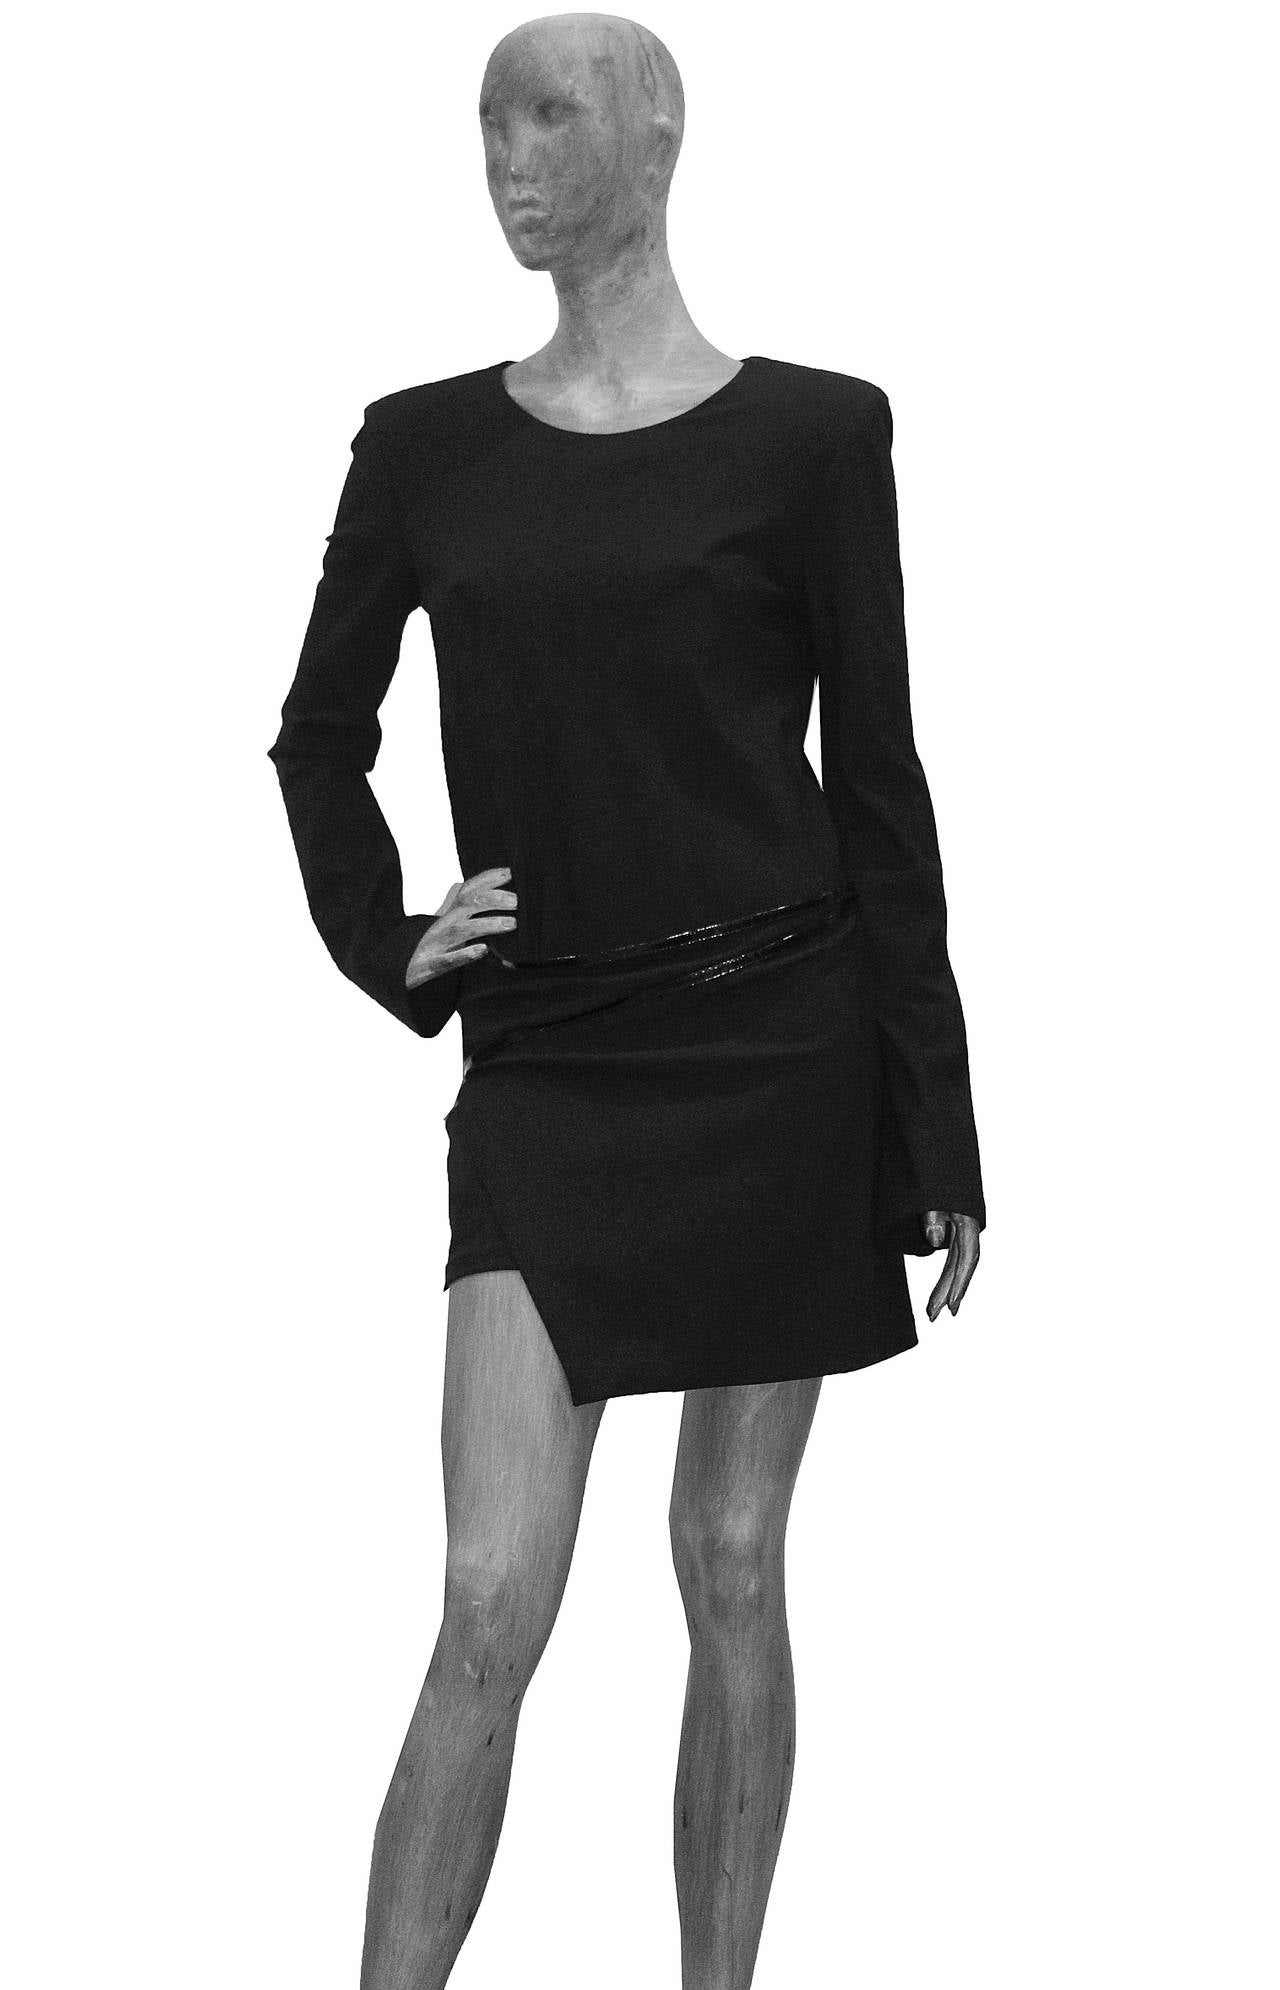 A fine and rare Gucci black mini dress designed by Tom Ford. The dress was first seen on the Milan catwalk for the famous Autumn/Winter 1997 show which defined the 90s.  This dress features long slim sleeves, a structured shoulder held by shoulder